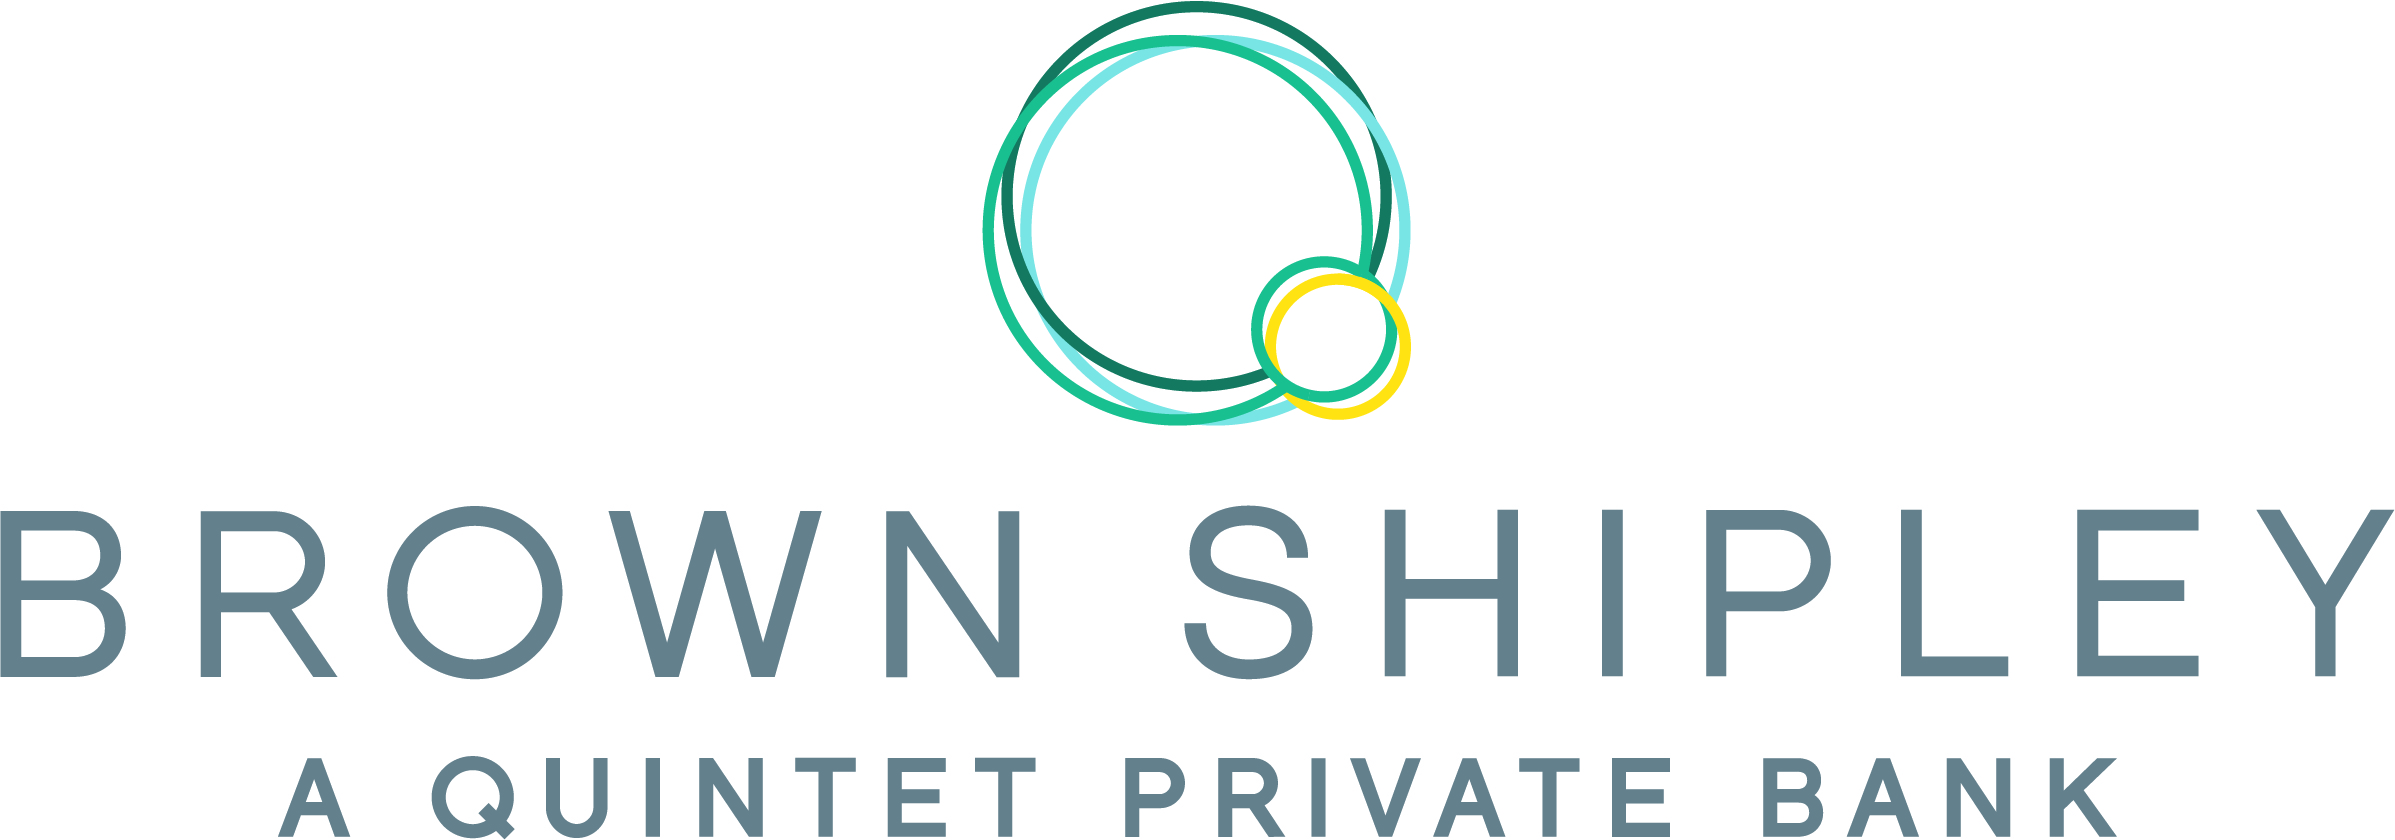 Brown Shipley Private Banking